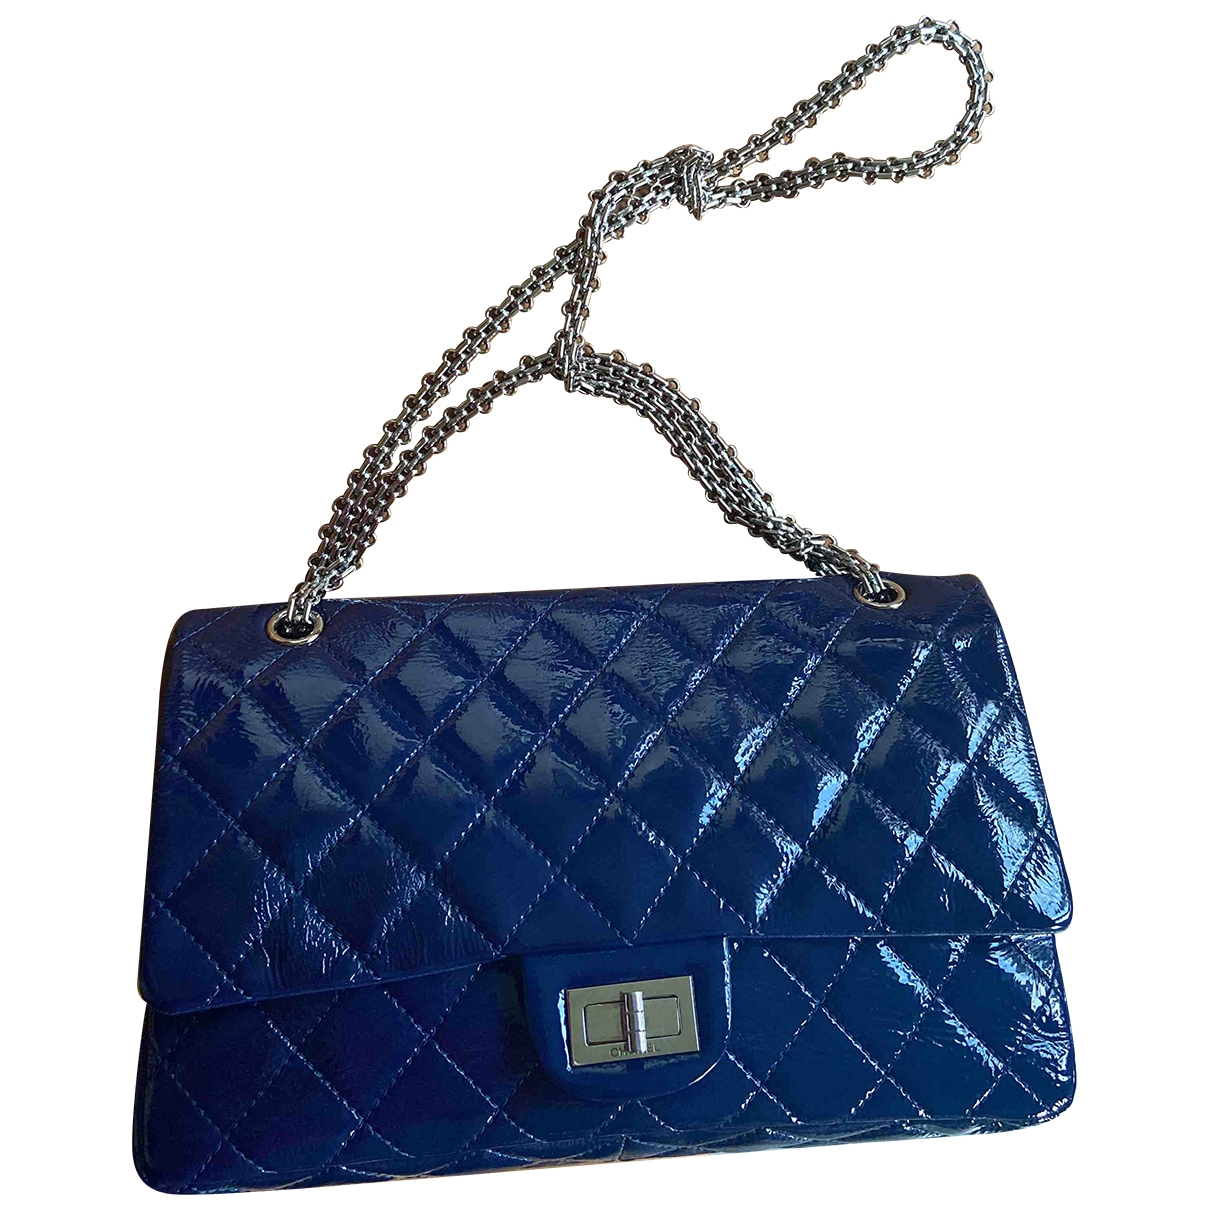 Chanel 2.55 Handtasche in  Blau Lackleder